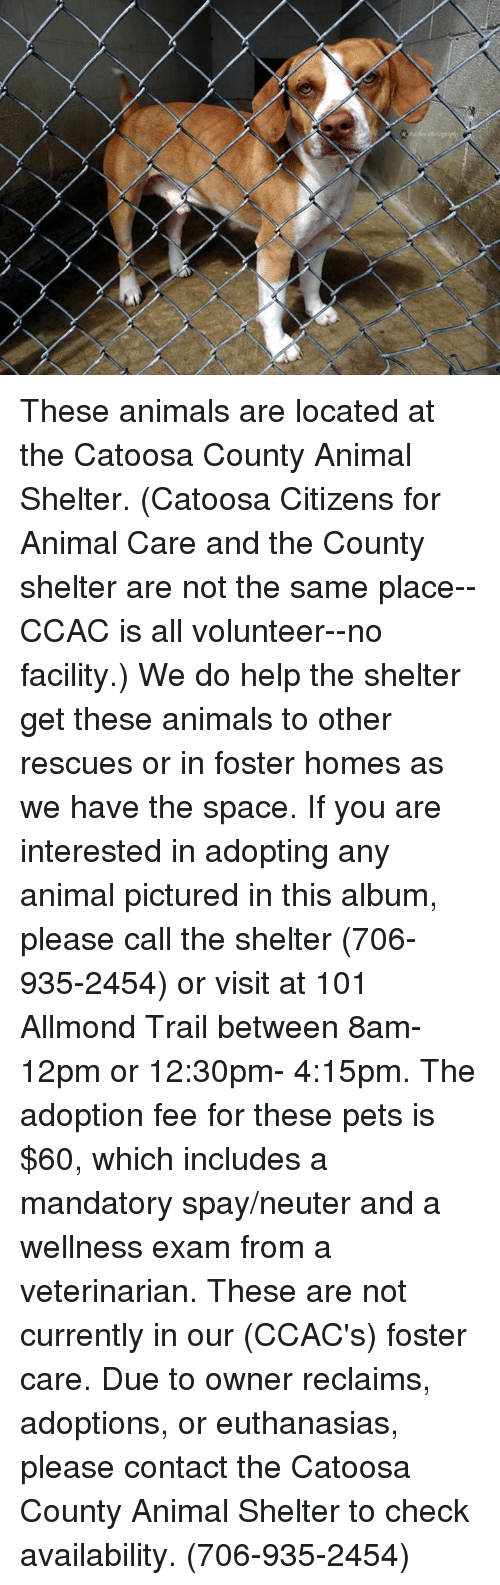 neuter: These animals are located at the Catoosa County Animal Shelter.  (Catoosa Citizens for Animal Care and the County shelter are not the same place--CCAC is all volunteer--no facility.)  We do help the shelter get these animals to other rescues or in foster homes as we have the space.  If you are interested in adopting any animal pictured in this album, please call the shelter (706-935-2454) or visit at 101 Allmond Trail between 8am-12pm or 12:30pm- 4:15pm. The adoption fee for these pets is $60, which includes a mandatory spay/neuter and a wellness exam from a veterinarian.  These are not currently in our (CCAC's) foster care.  Due to owner reclaims, adoptions, or euthanasias, please contact the Catoosa County Animal Shelter to check availability. (706-935-2454)